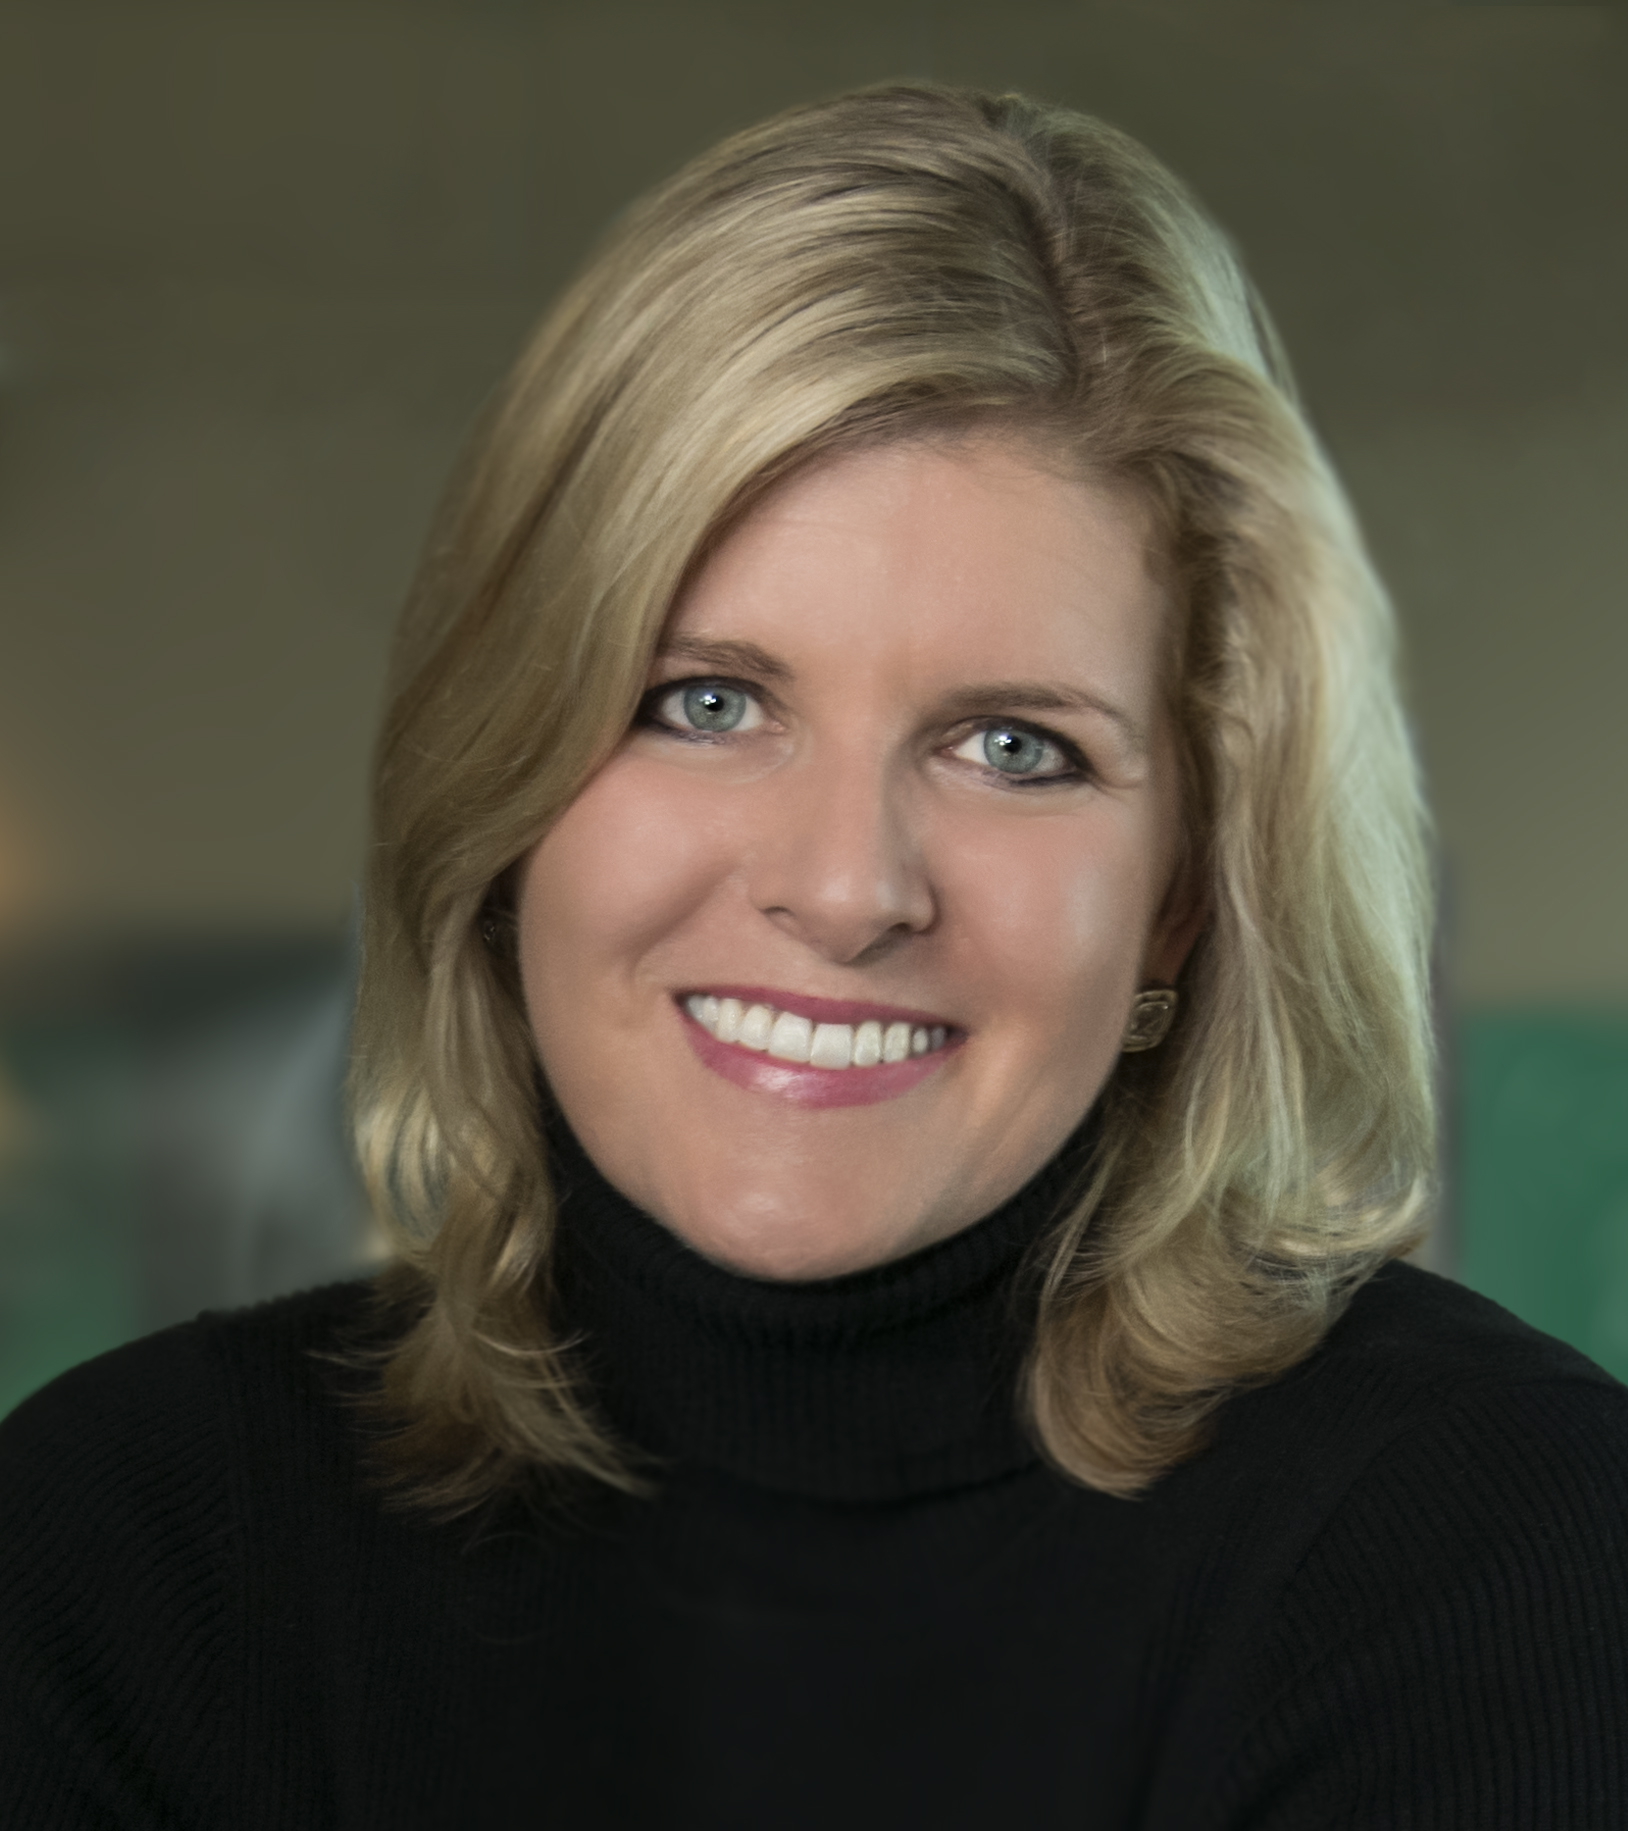 Colette LaForce, SVP and Chief Marketing Officer at AMD